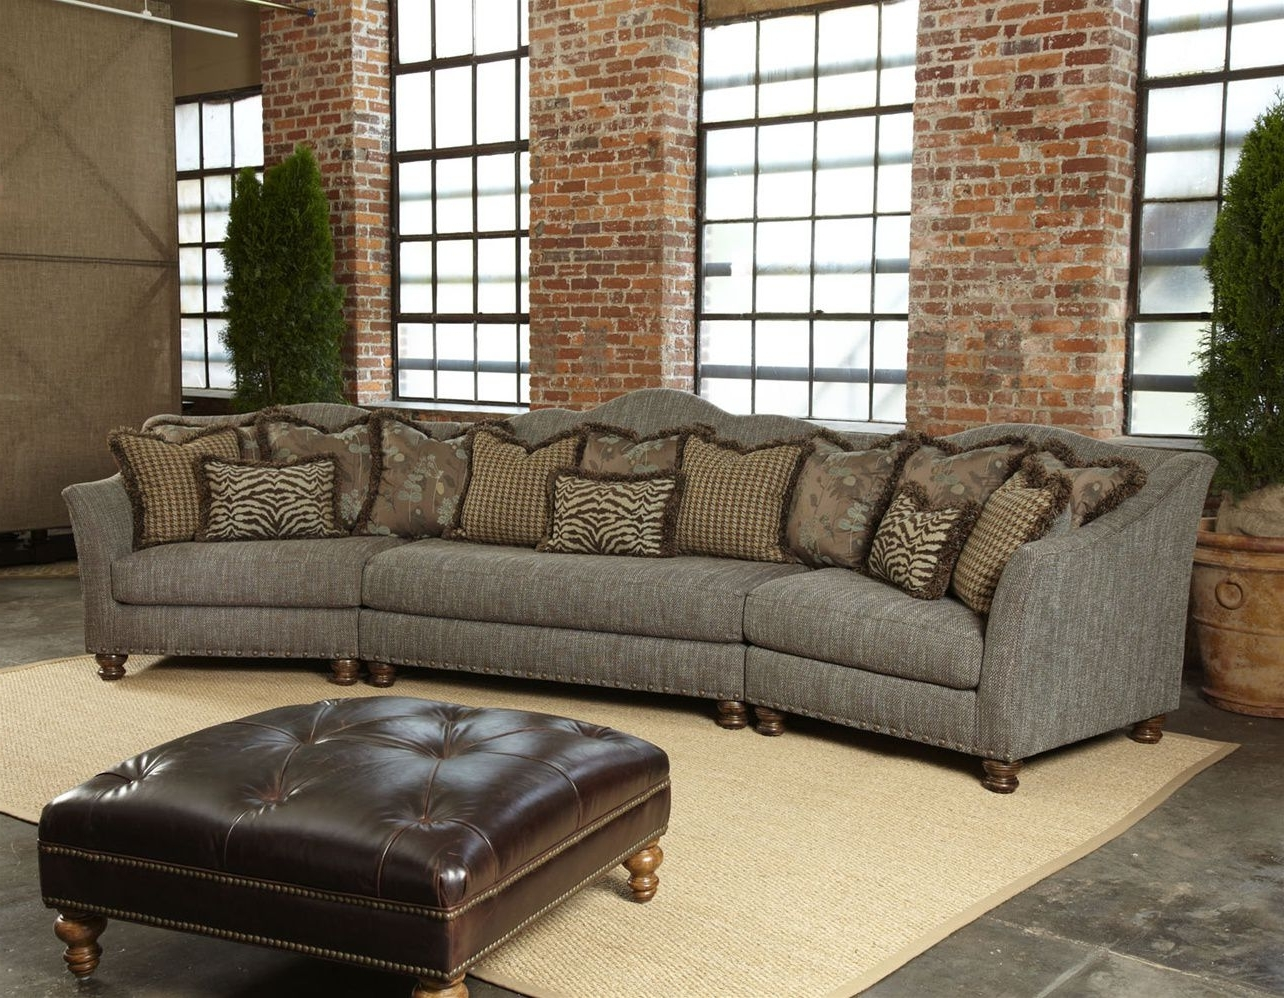 Most Current High End Sectional Sofas With Regard To Best Shaped Leather Sofa With Red Reclining Together Mid Century (View 10 of 20)